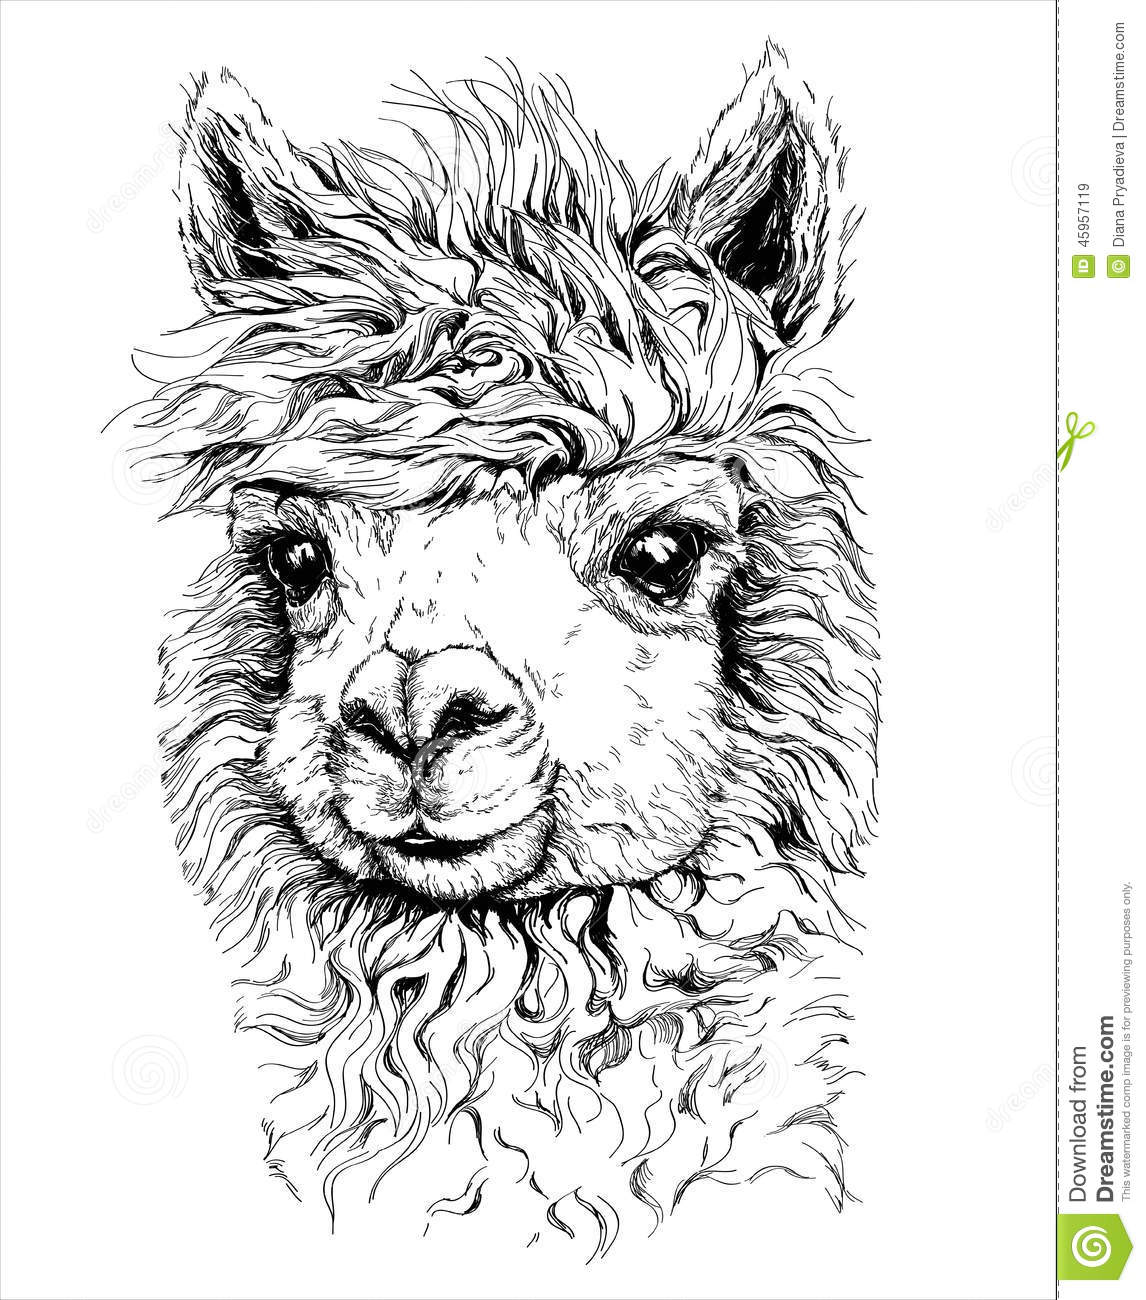 Realistic Sketch Of LAMA Alpaca, Black And White Drawing, Isolated.